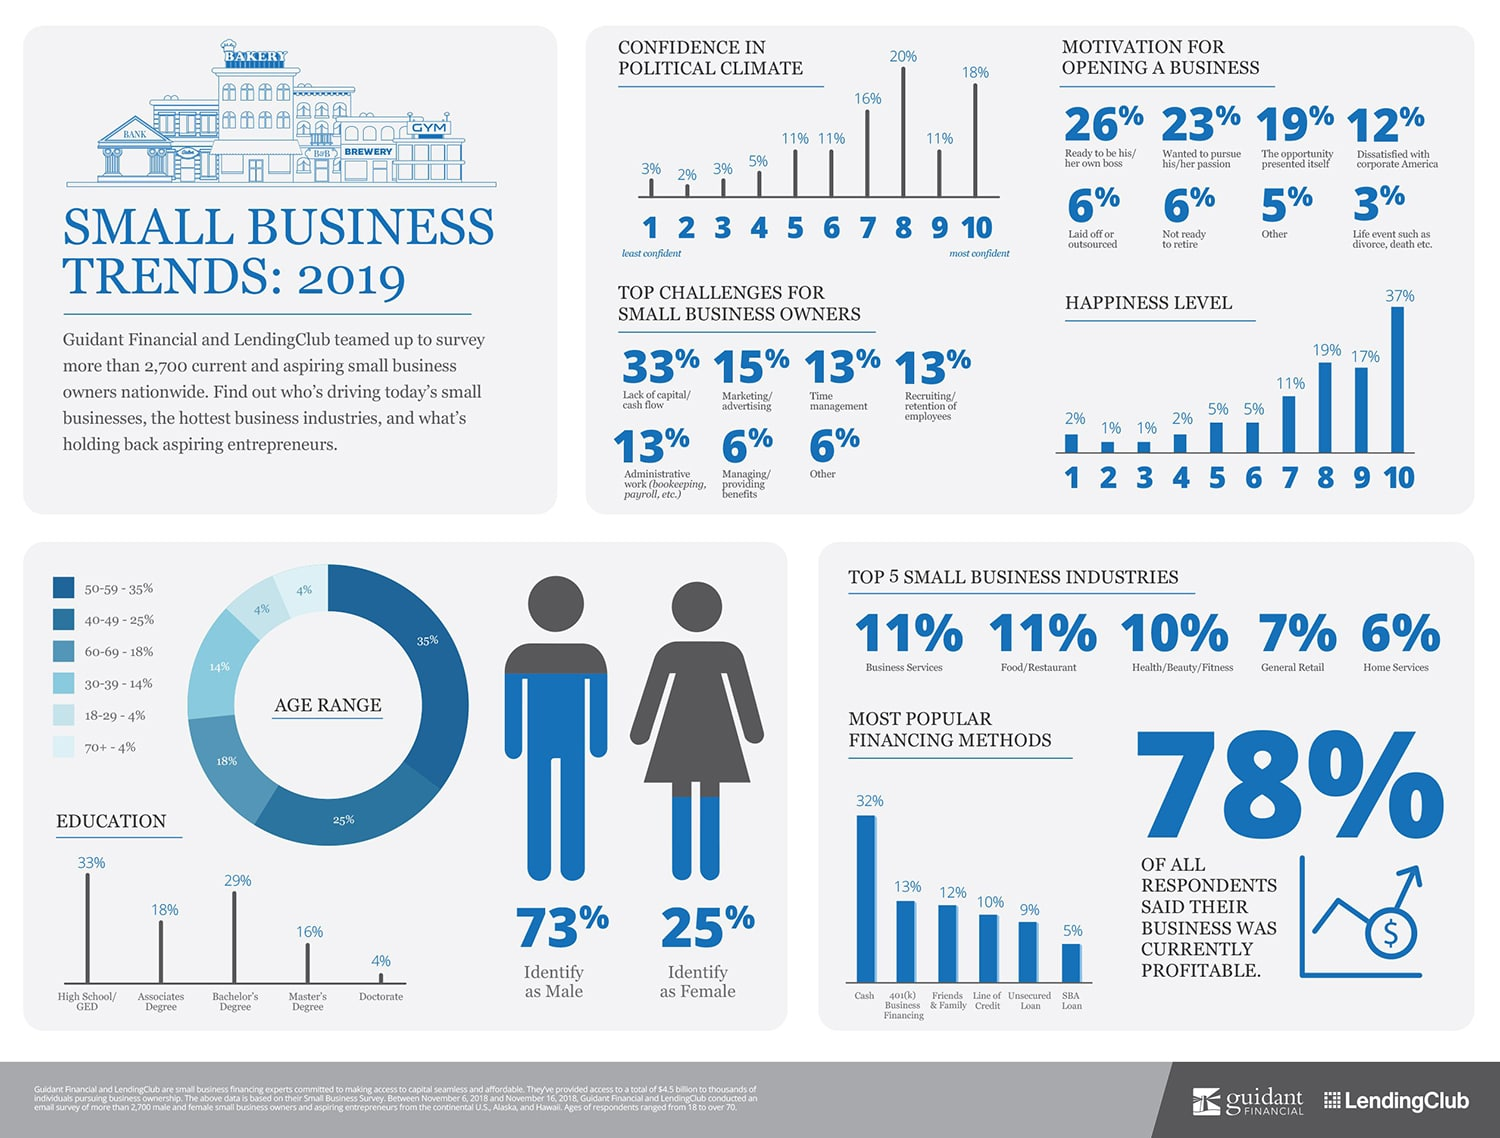 Small Business Trends and Statistics - Guidant Financial